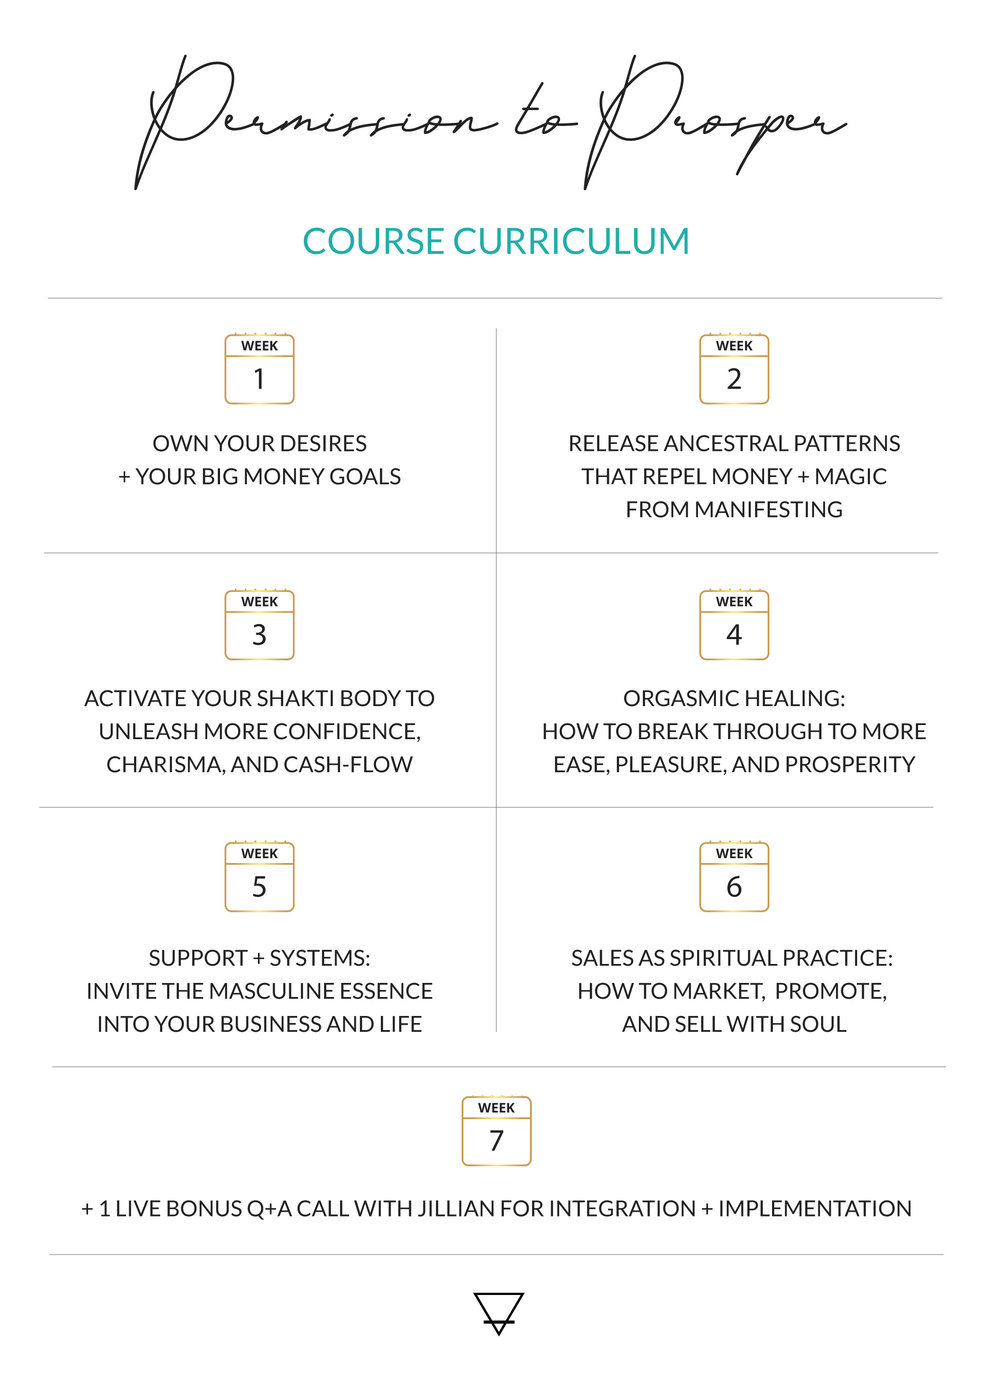 P2P-course-curriculum-.jpg